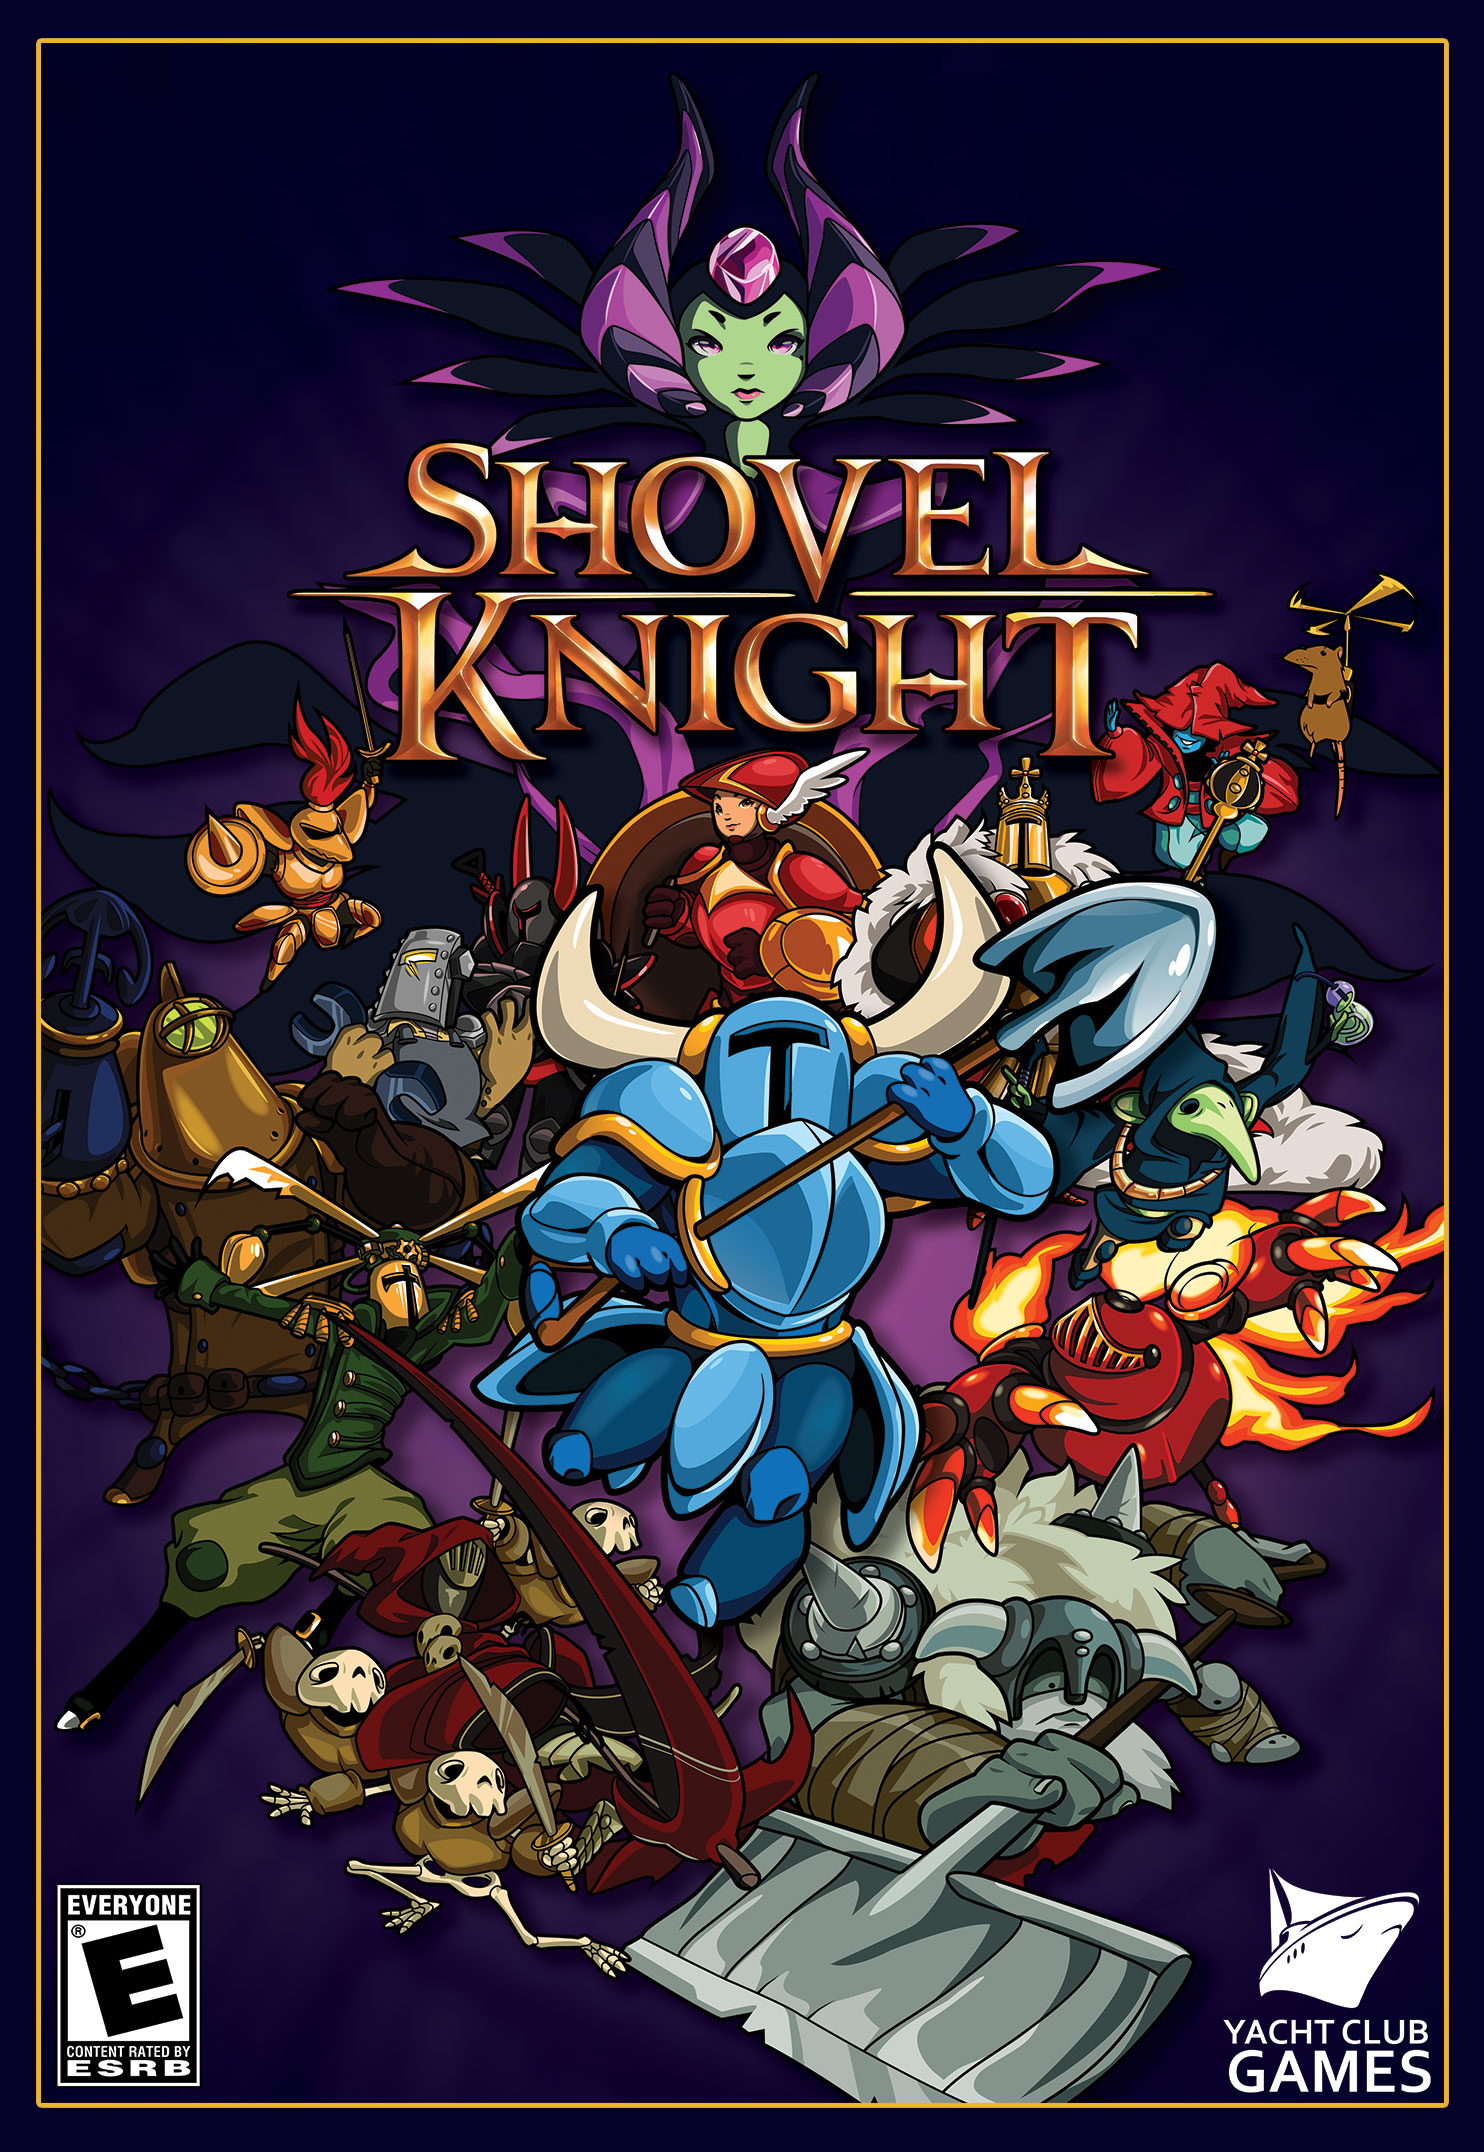 File:Shovel knight cover.jpg